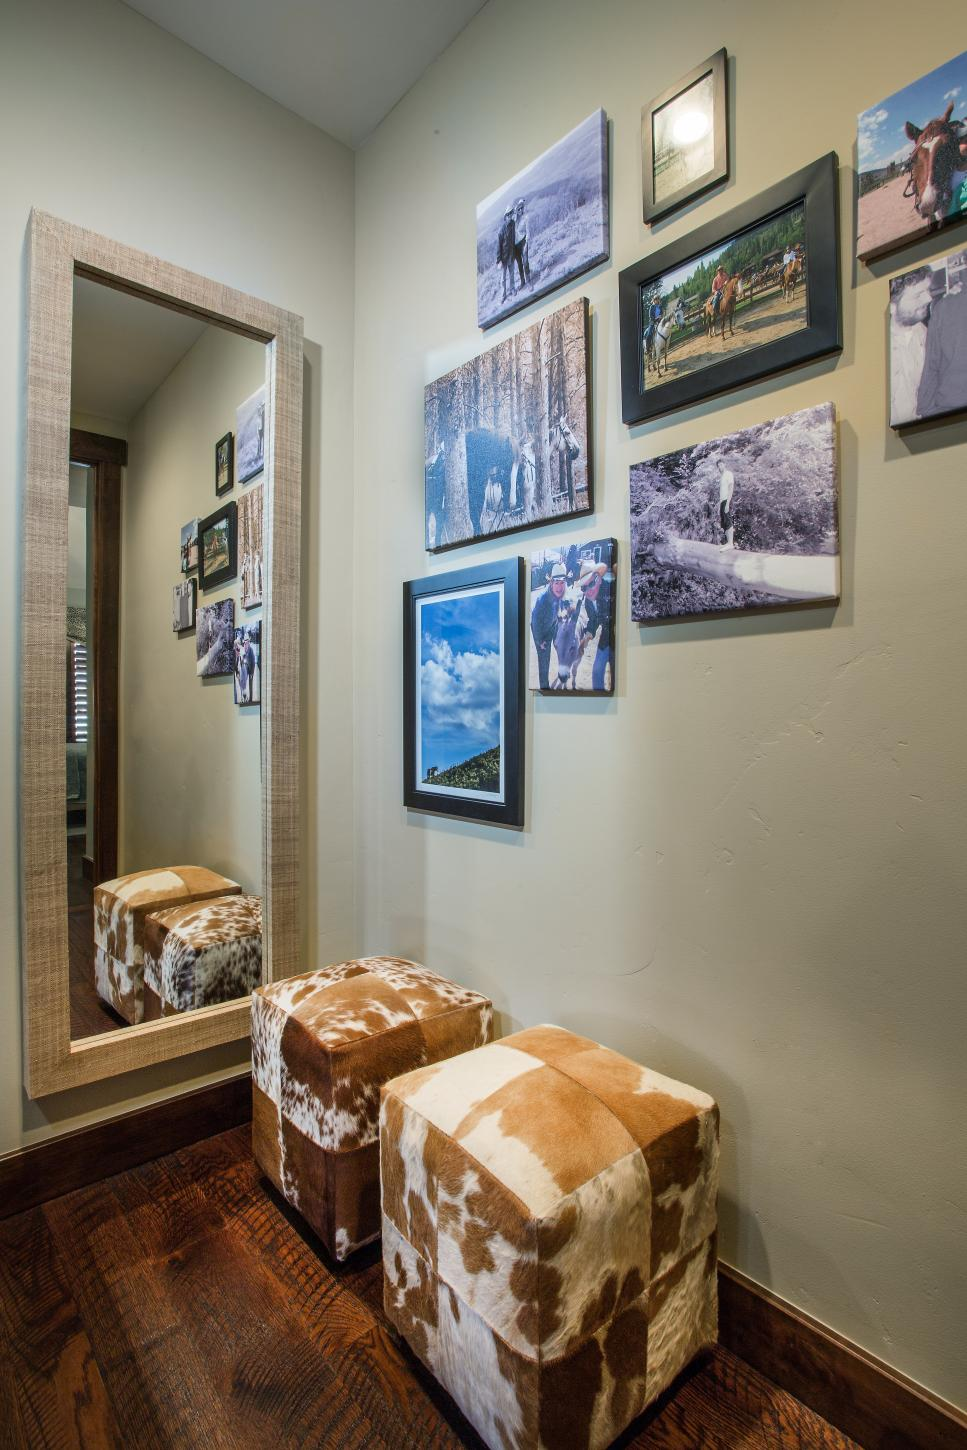 Gallery on Neutral Wall With Full Length Mirror & Cowhide Stools